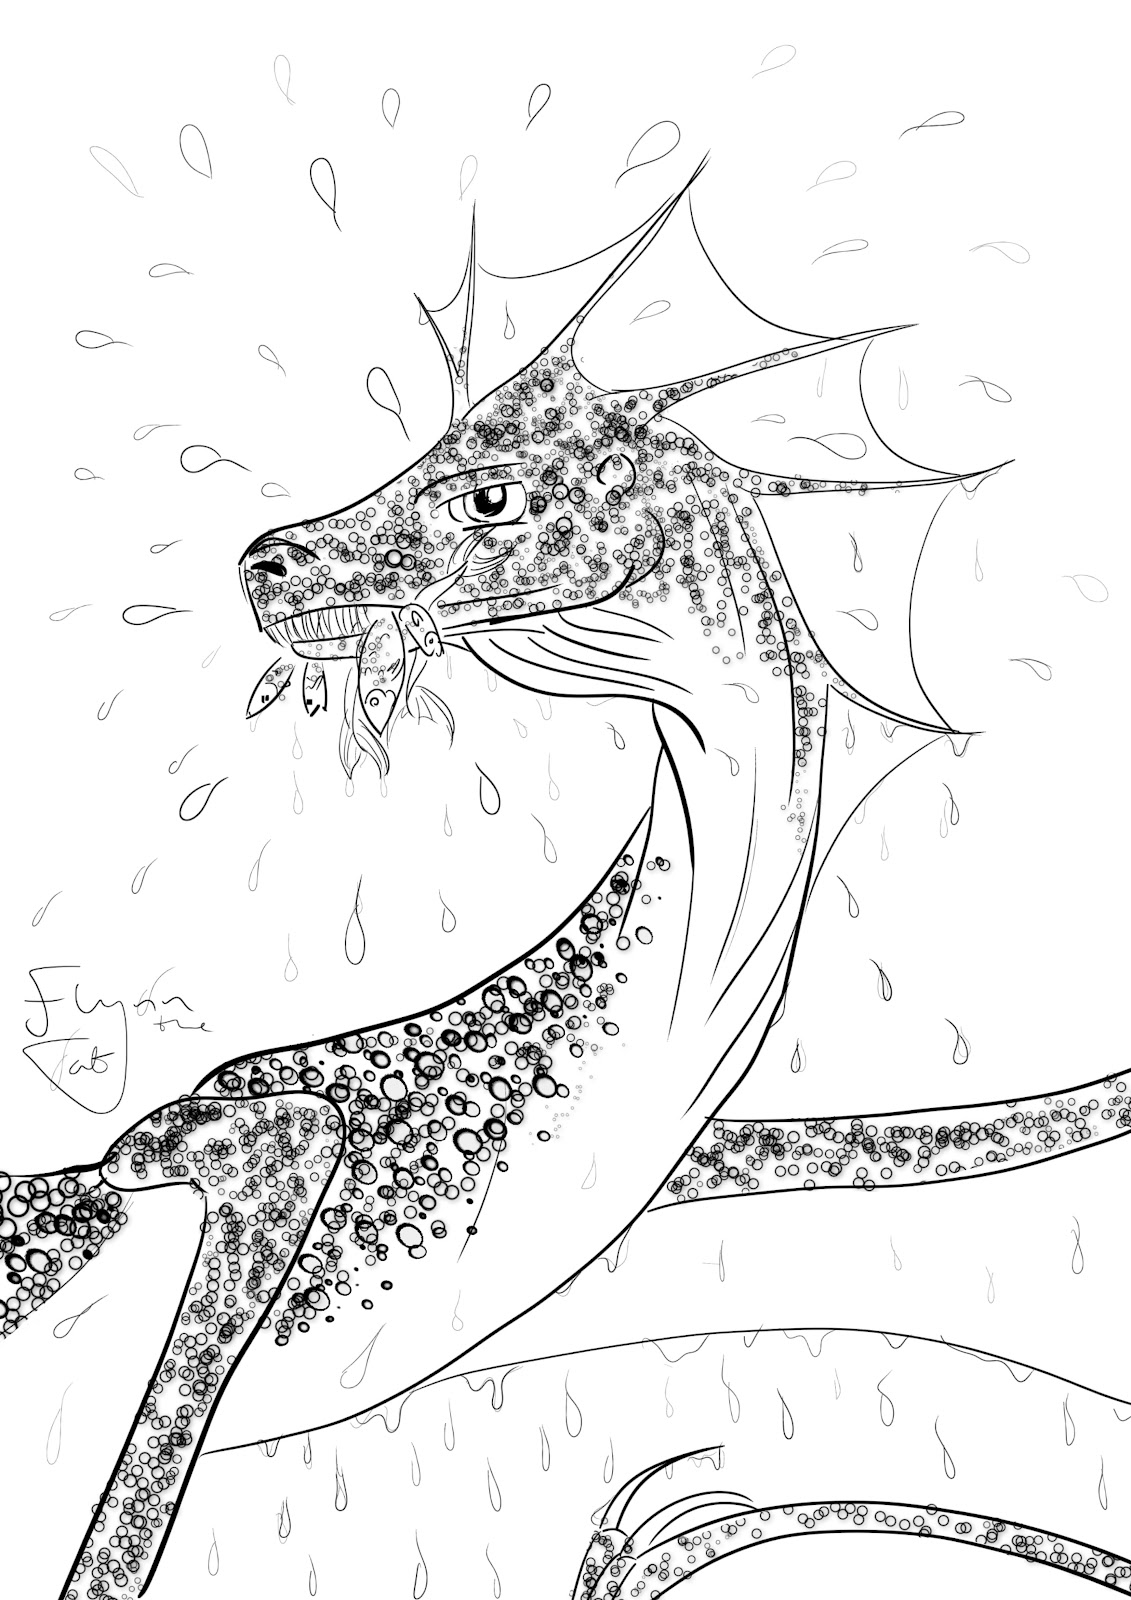 Coloring Pages Sea Serpent Coloring Pages sea monster coloring pages redcabworcester serpent drawings dragon monster